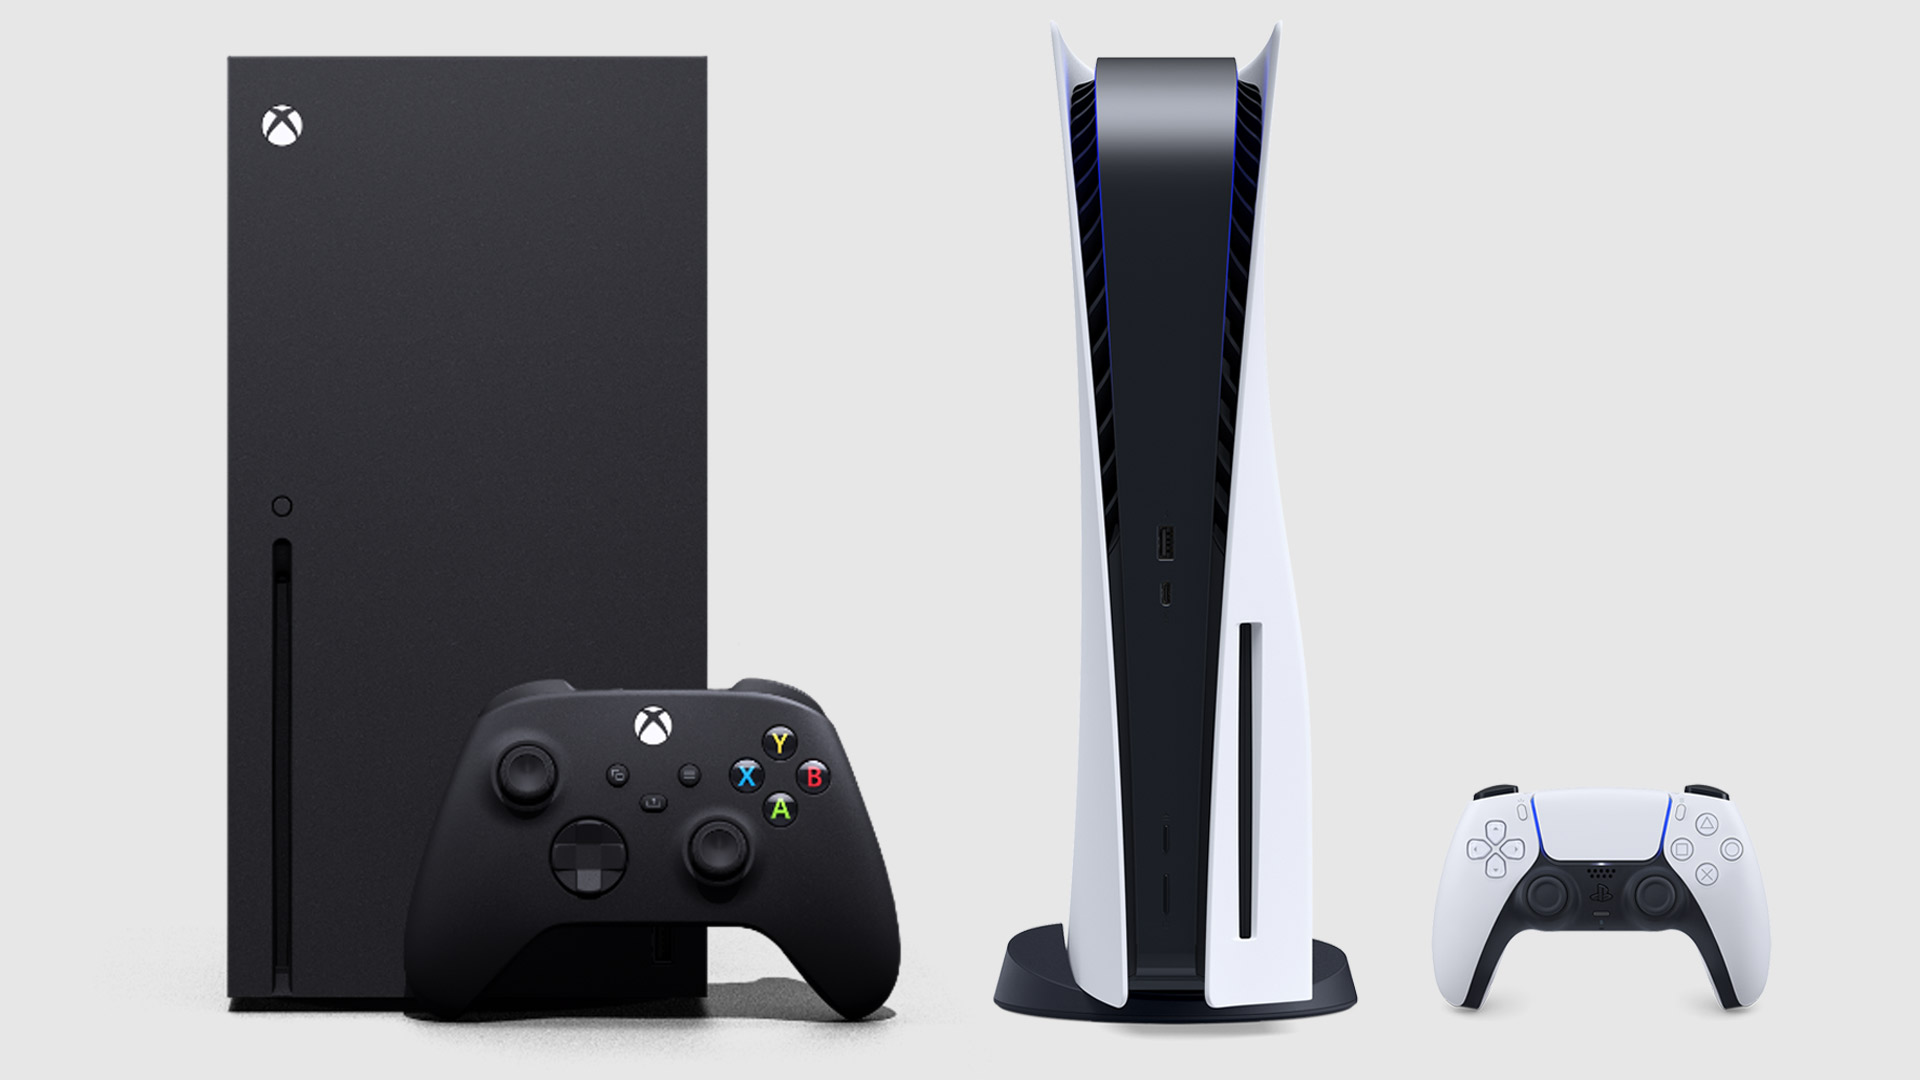 The State of Gaming September 2020: Next-Gen Xbox + PS5 Priced, NPD, The Avengers Stalls, Tony Hawk MVP, Super Mario 3D and RIP 3DS